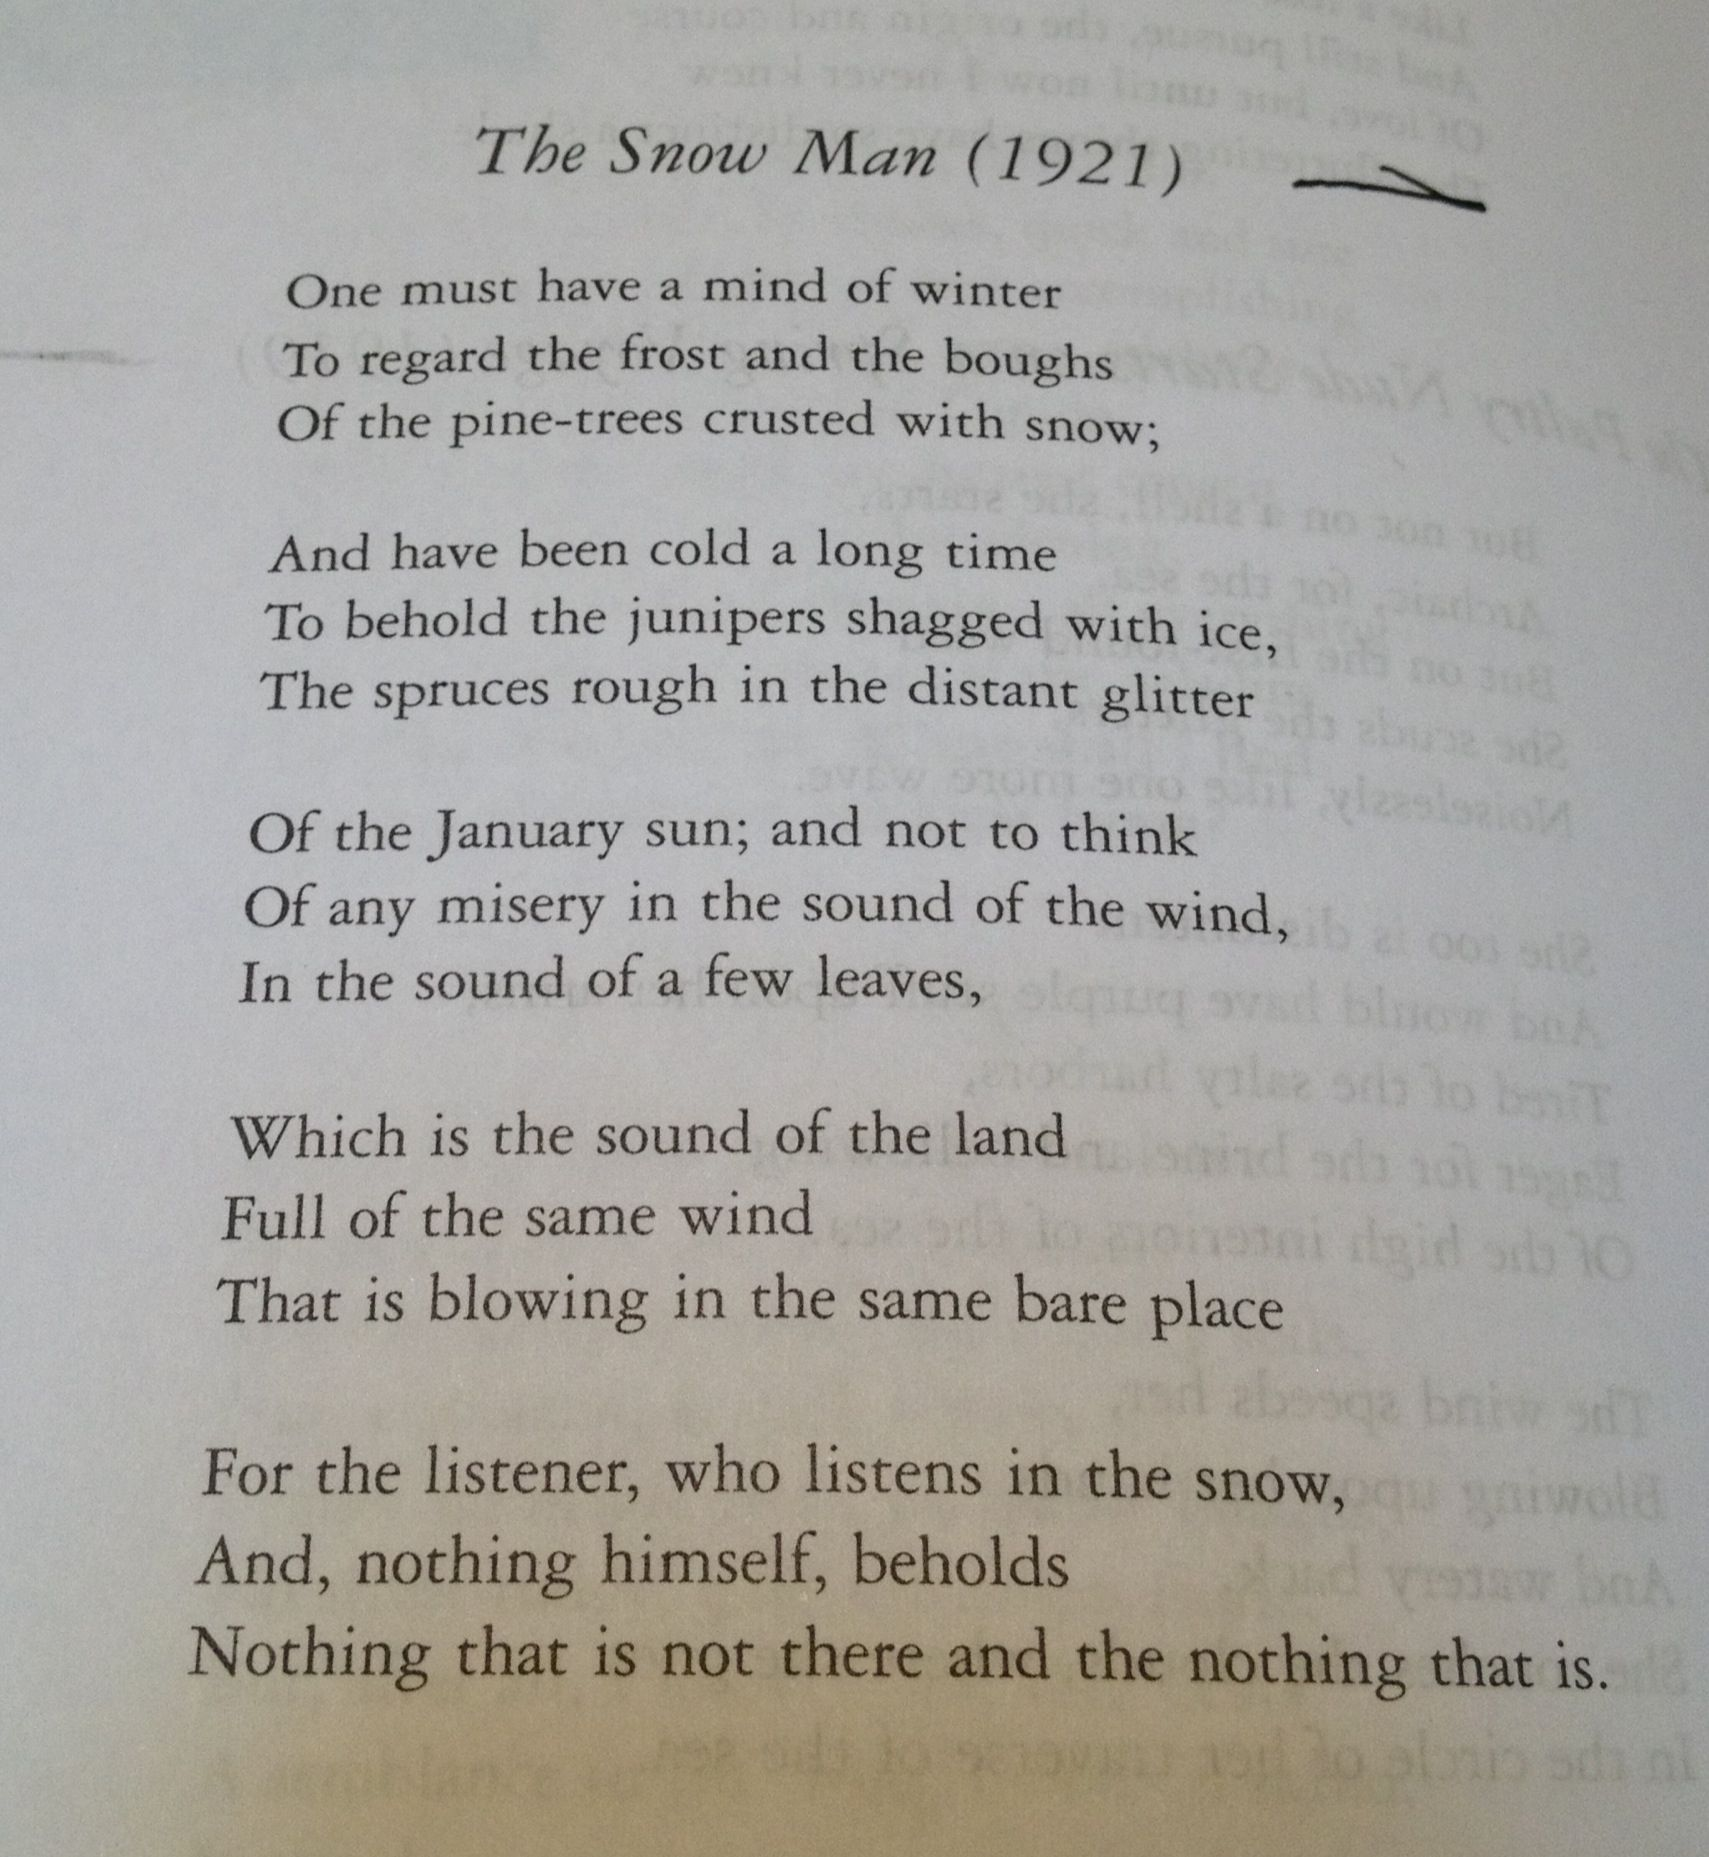 "analysis wallace stevens modern poetry The first feature of modern poetry is a focus on newness as expressed in ezra   in their own ways, robert frost, wallace stevens, and william carlos  ""poetry  provides the one permissible way of saying one thing and meaning another."